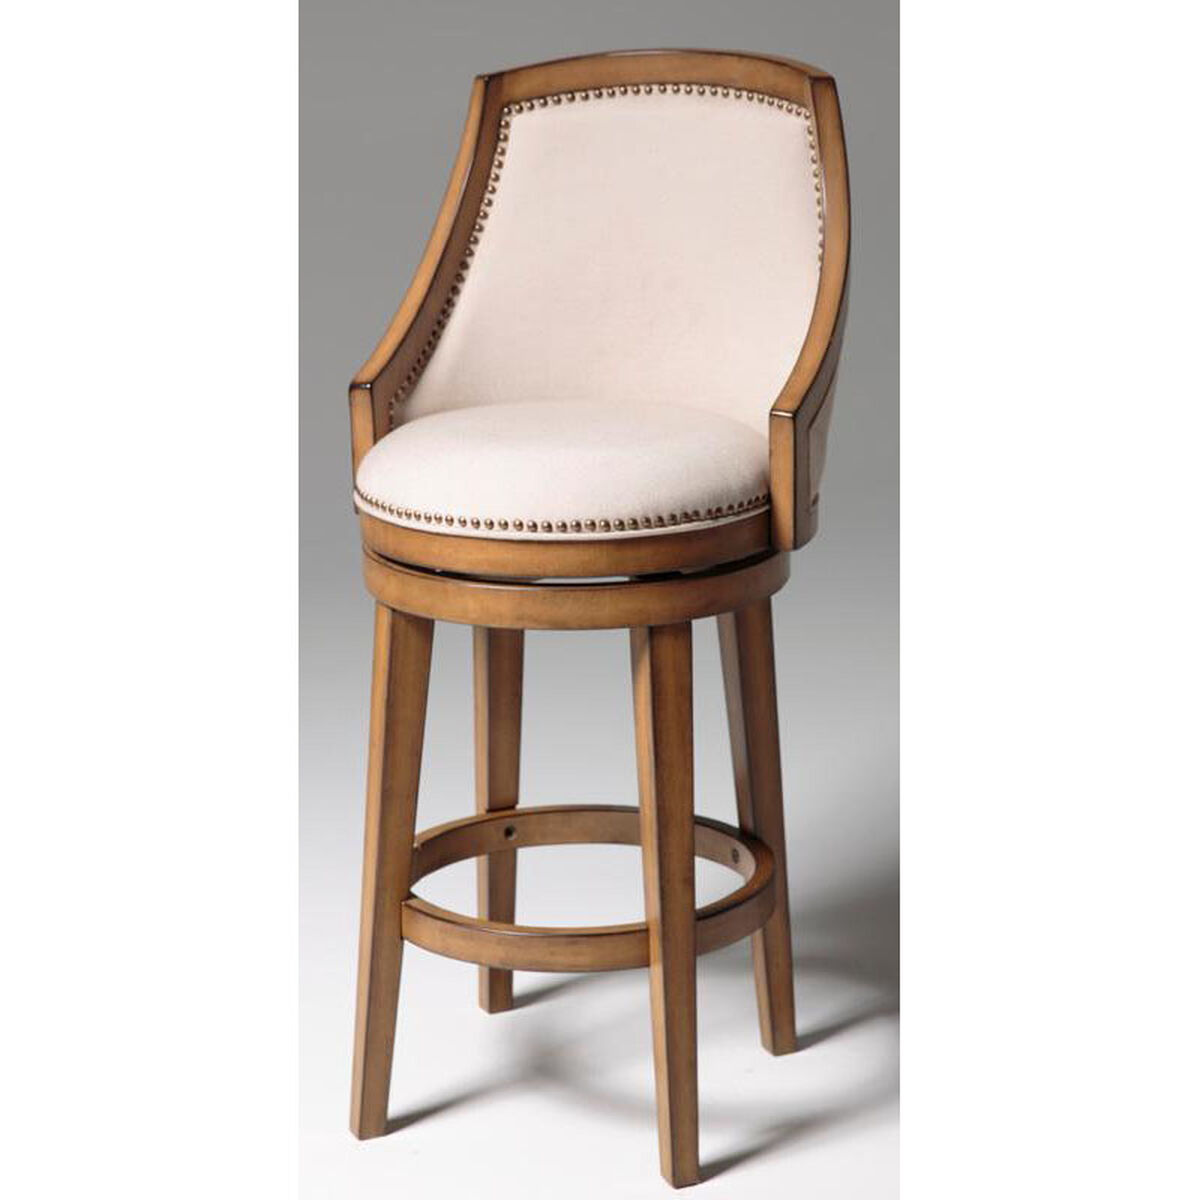 Our Charleston 30 H Wood Sloped Arms Swivel Bar Stool With Putty Upholstered Seat